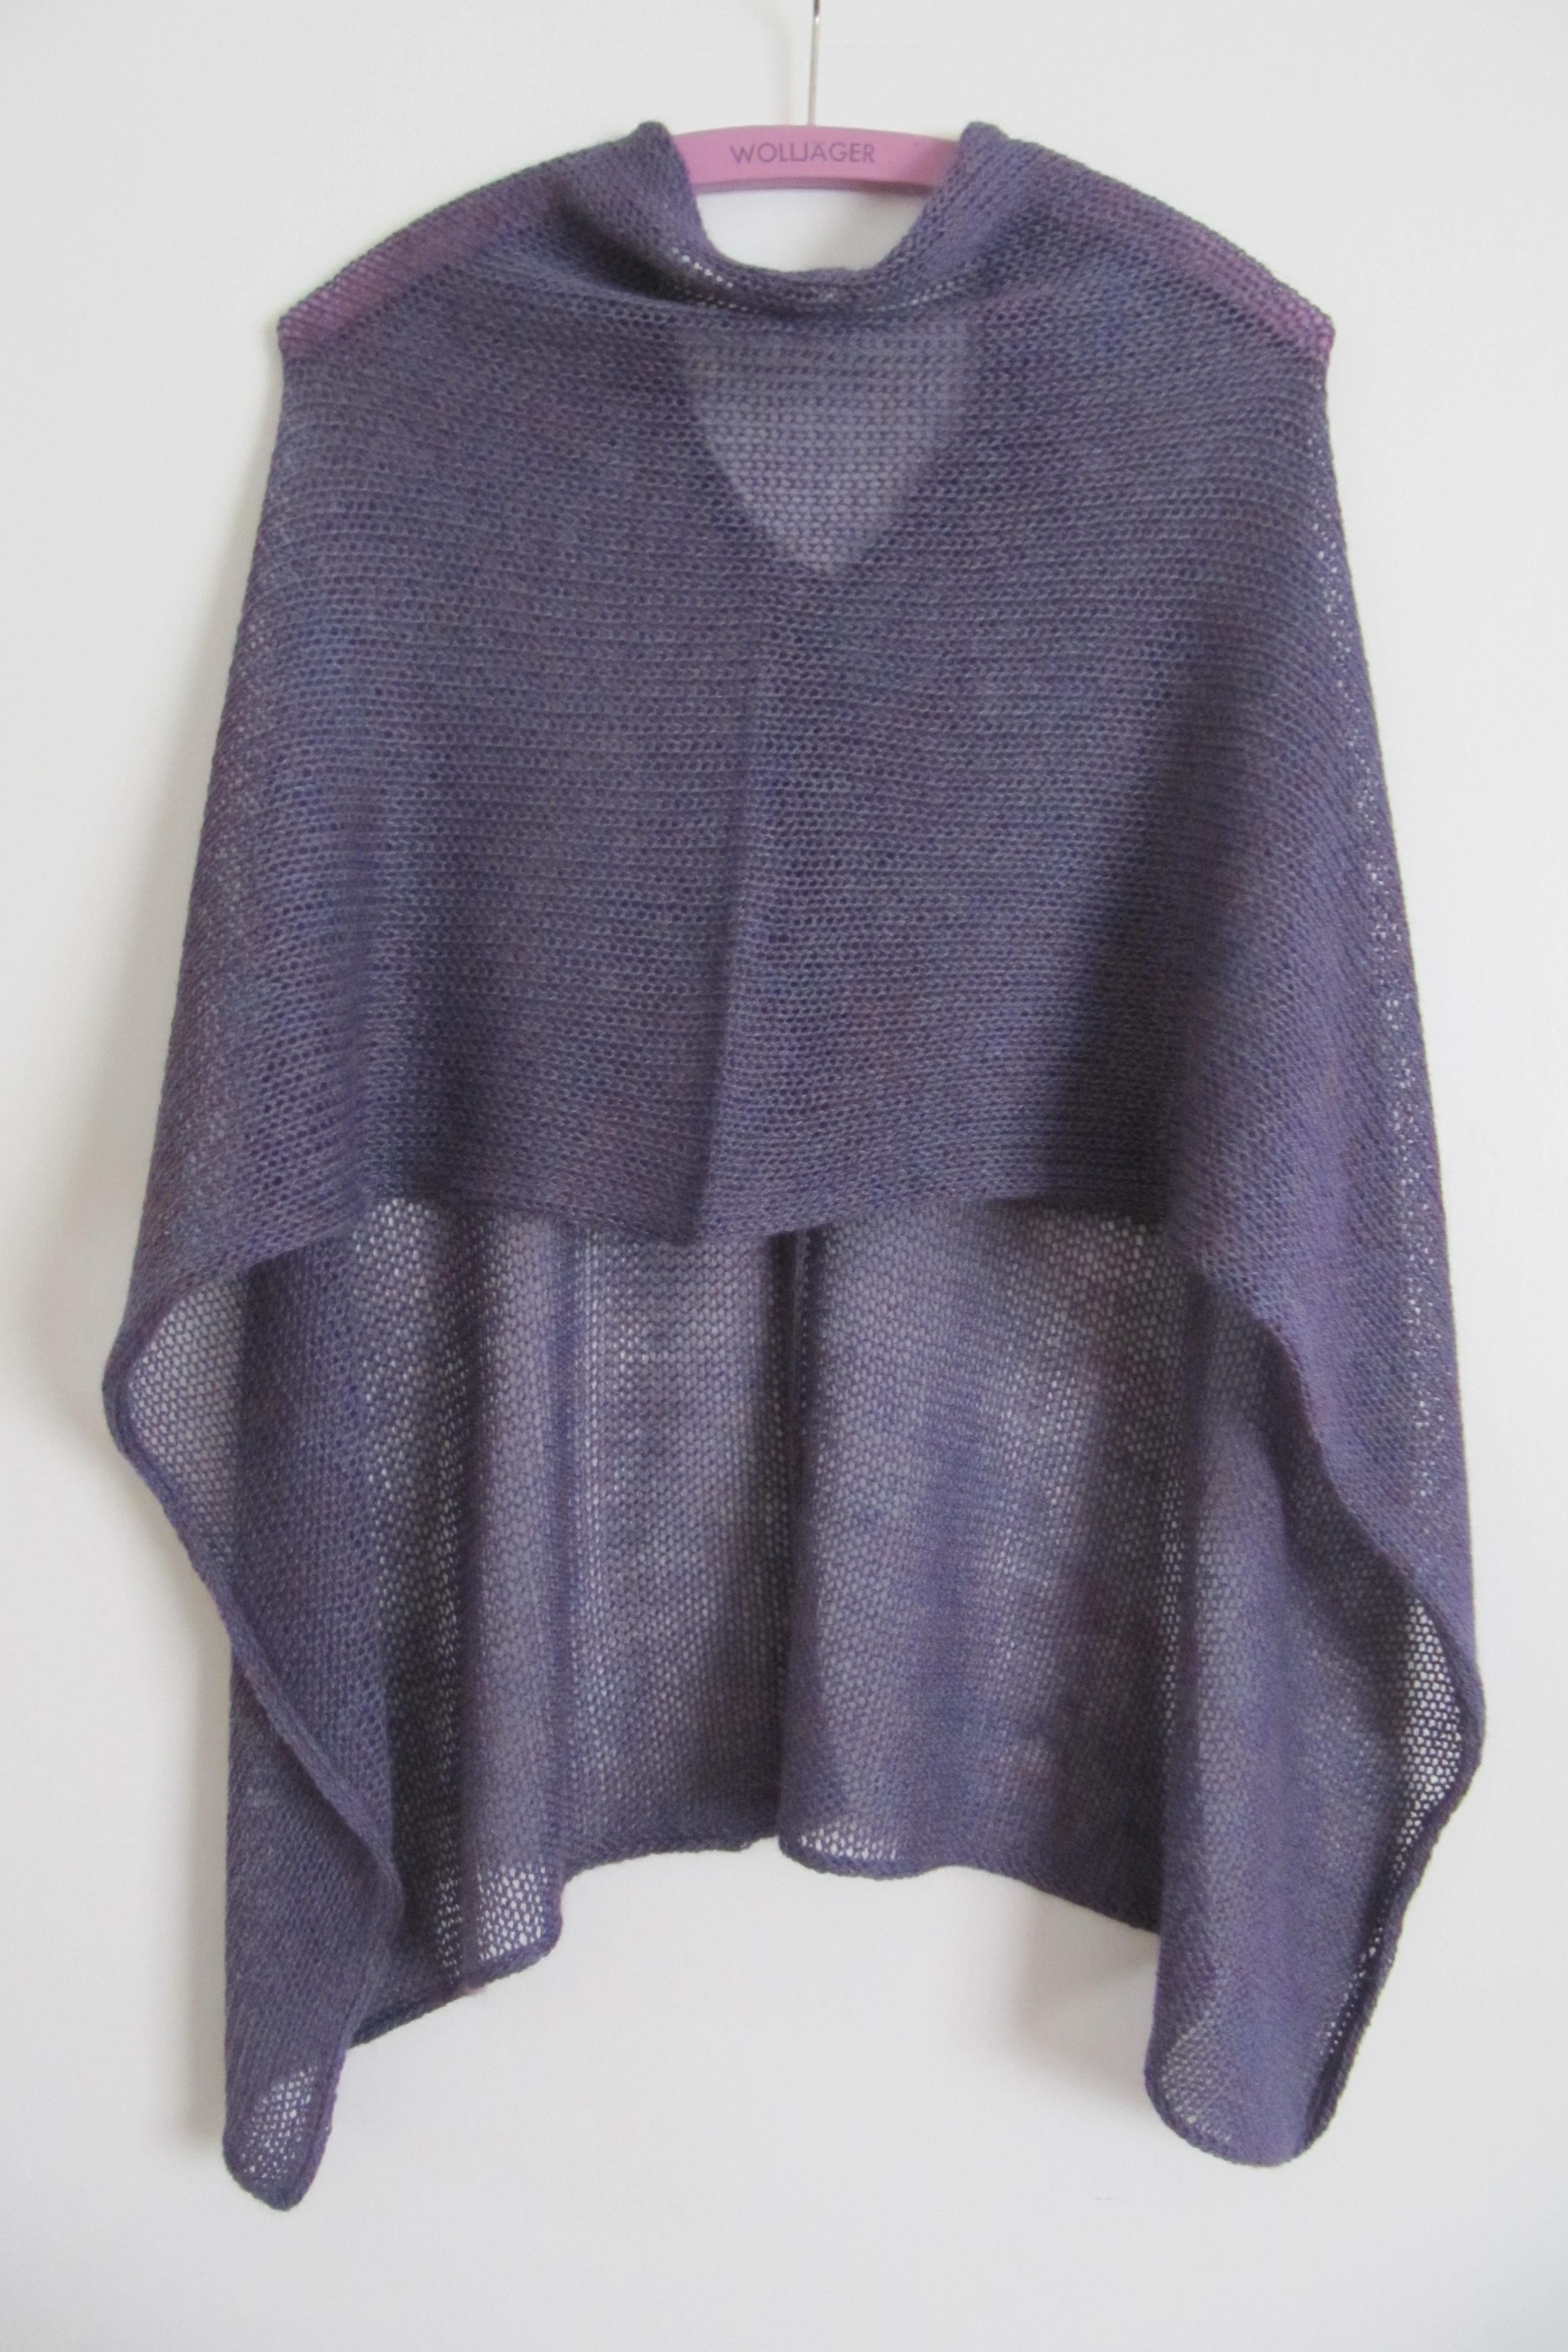 Very easy Poncho | Pinterest | Ponchos, Patterns and Easy